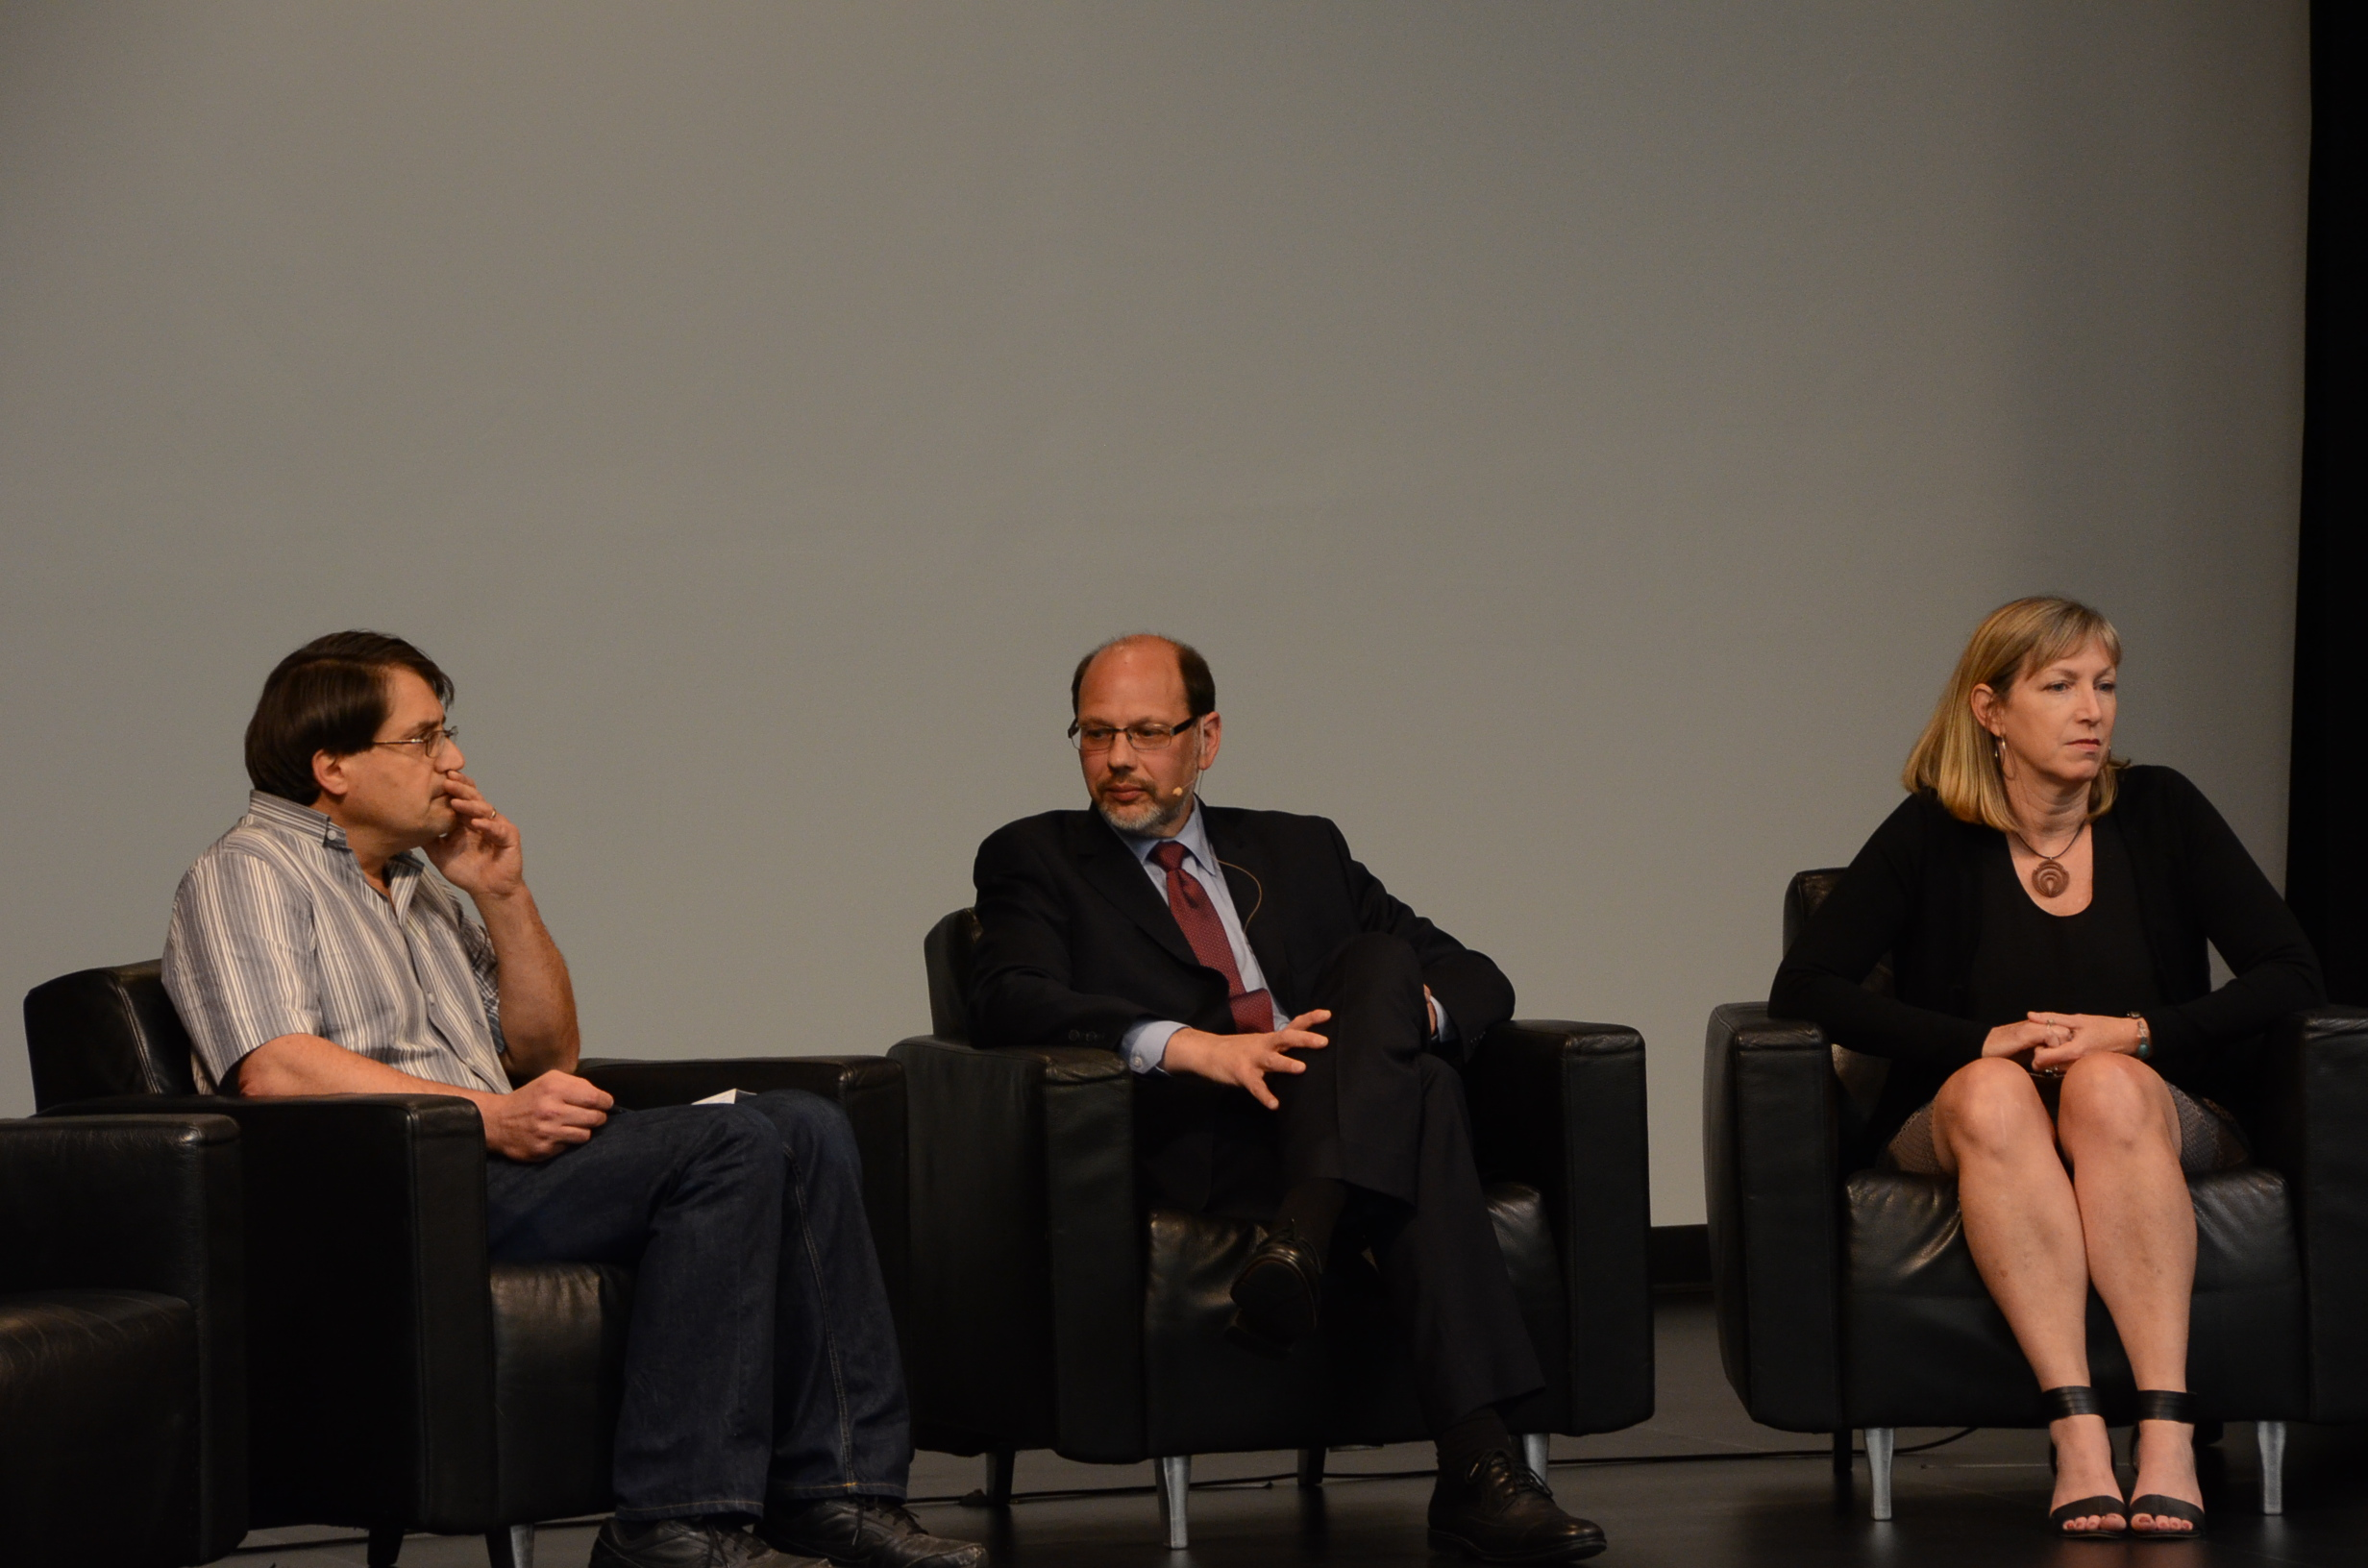 Panel with (from left) Chris Cowie from Community Justice Initiatives, (off camera) Joe Mancini from the Working Centre, Howard Sapers, Julie Thompson from CJI, and Dionne, (not seen, pseudonym), a former federal inmate.